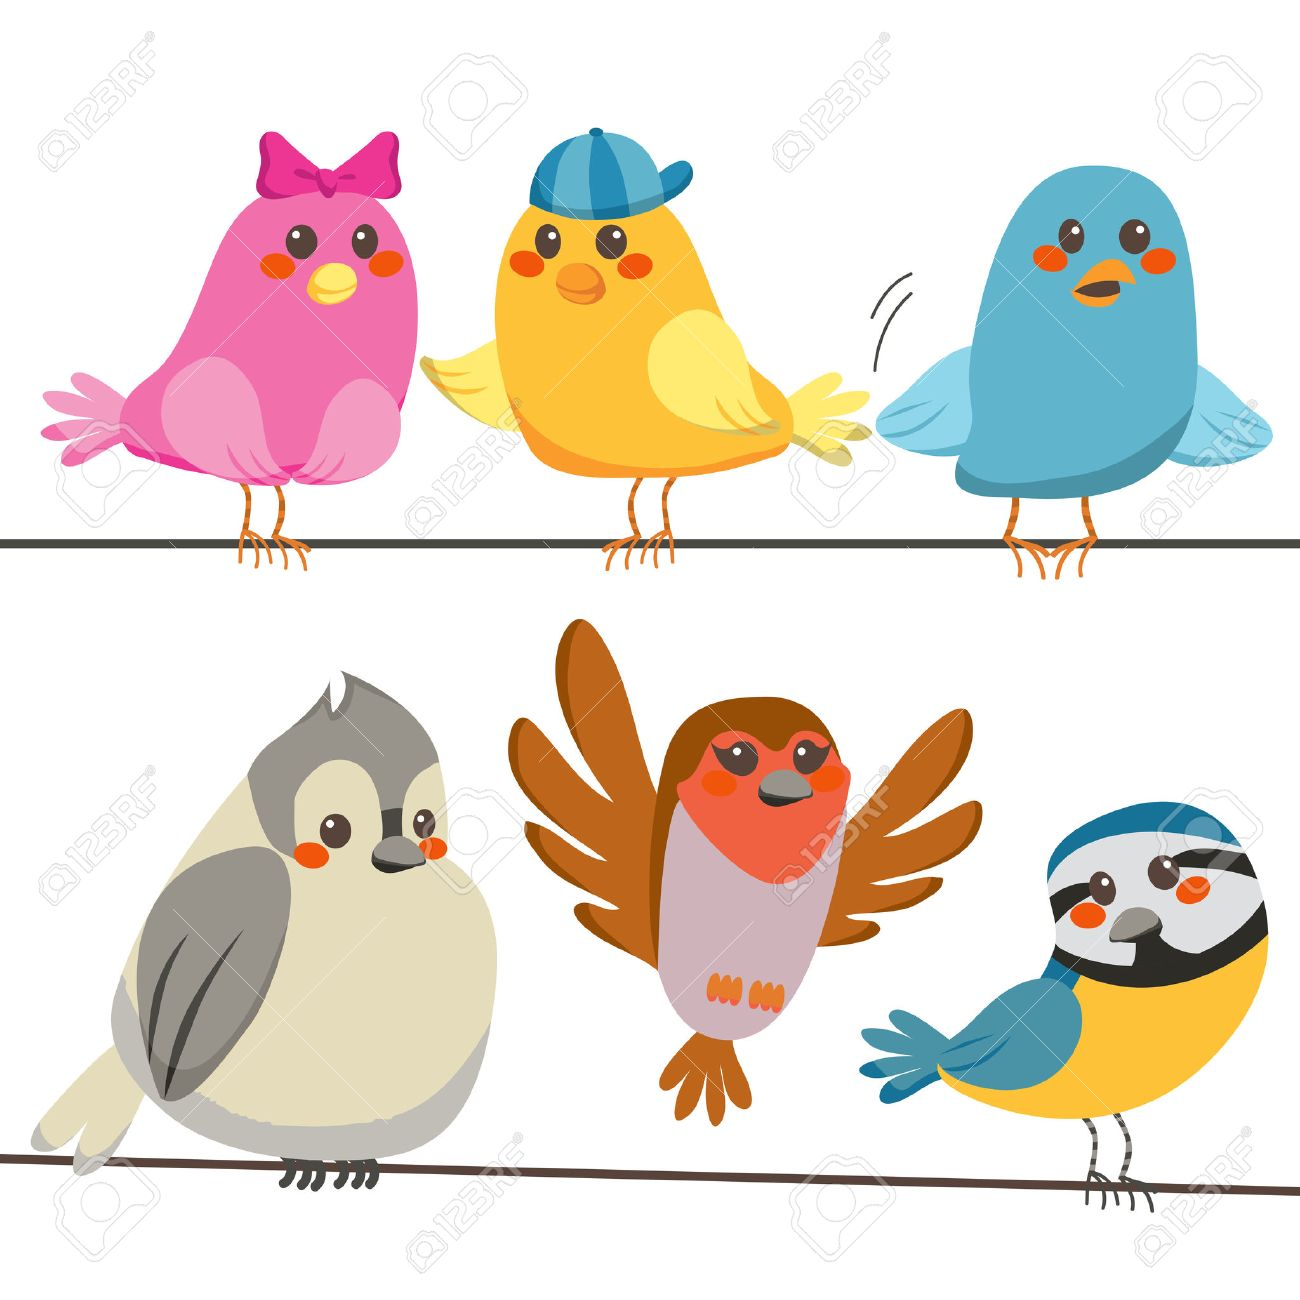 Six cute and colorful little birds perched on power wire lines Stock Vector - 8133384